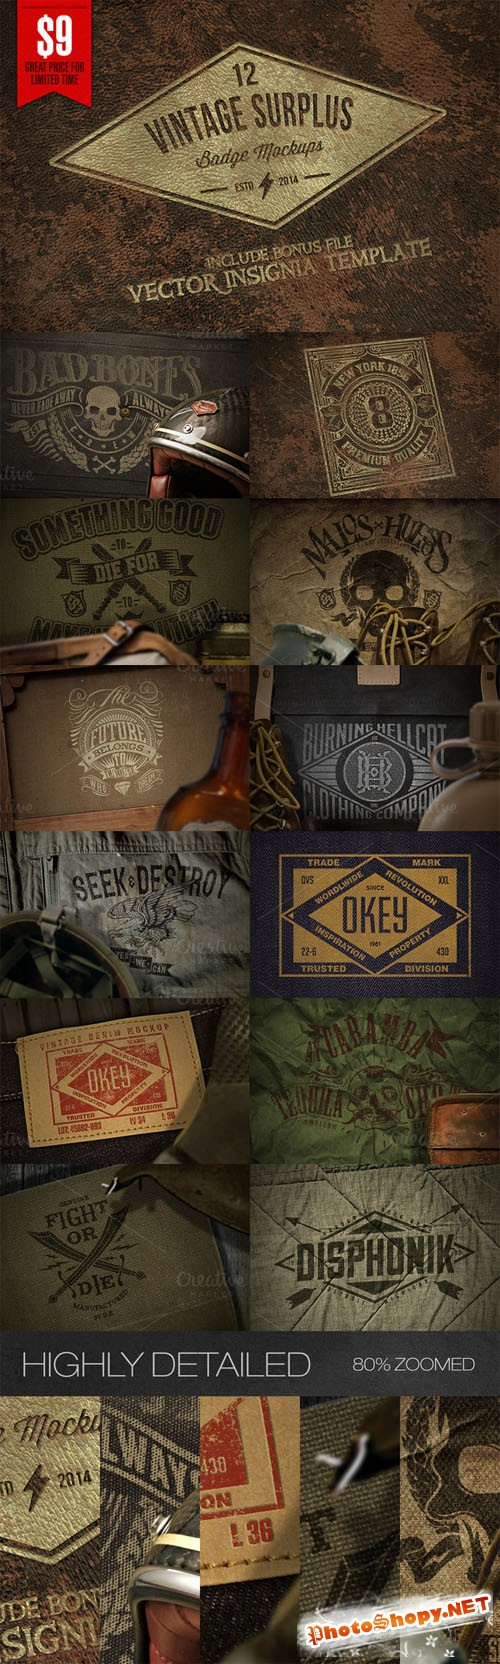 CreativeMarket - Vintage Surplus Badge Mockups